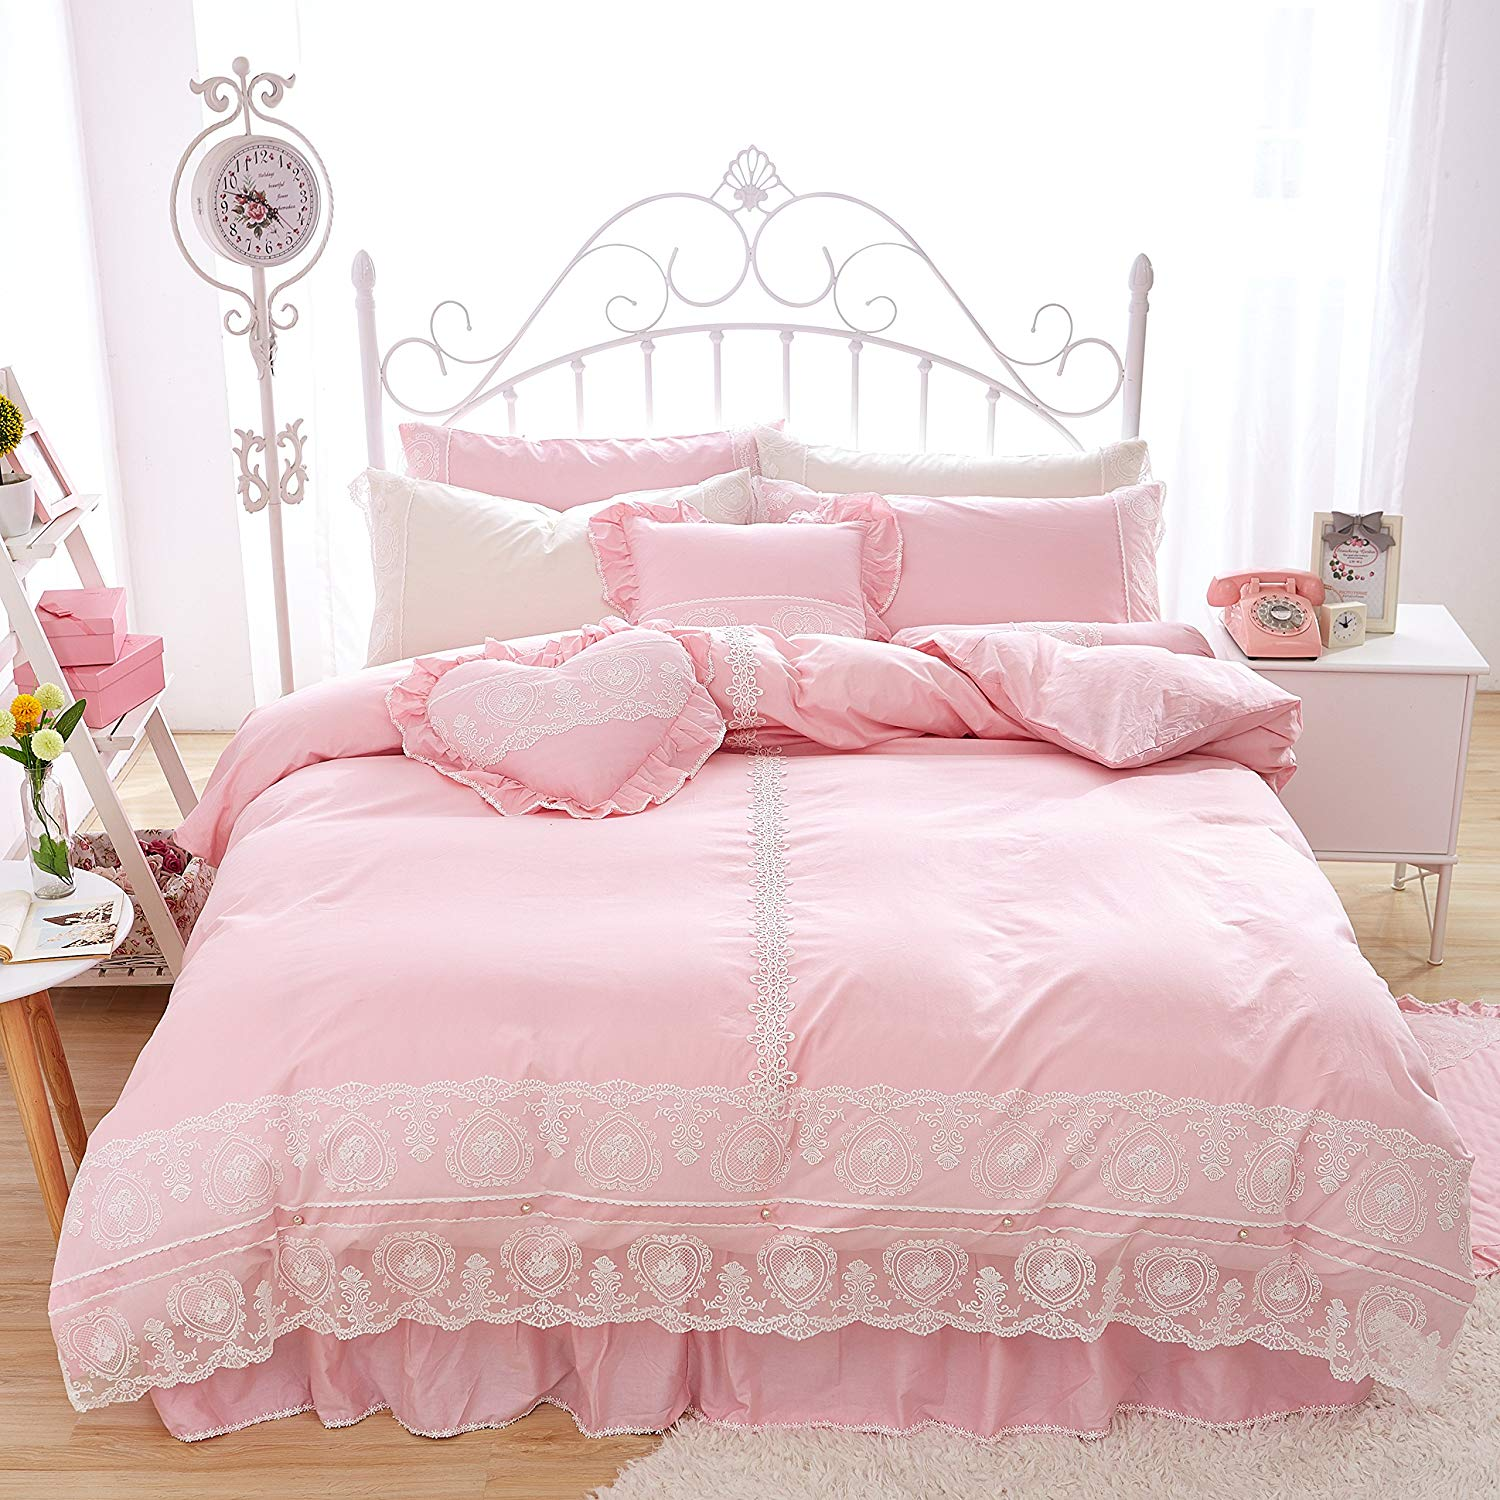 Buy Fadfay Home Textile Beautiful Korean Lace Bedding Sets Luxury Girls Pink Lace Ruffle Bedding Sets Romantic Princess Wedding Bedding Set Girls Fairy Bedding Sets 9 Pcs Twin In Cheap Price On Alibaba Com